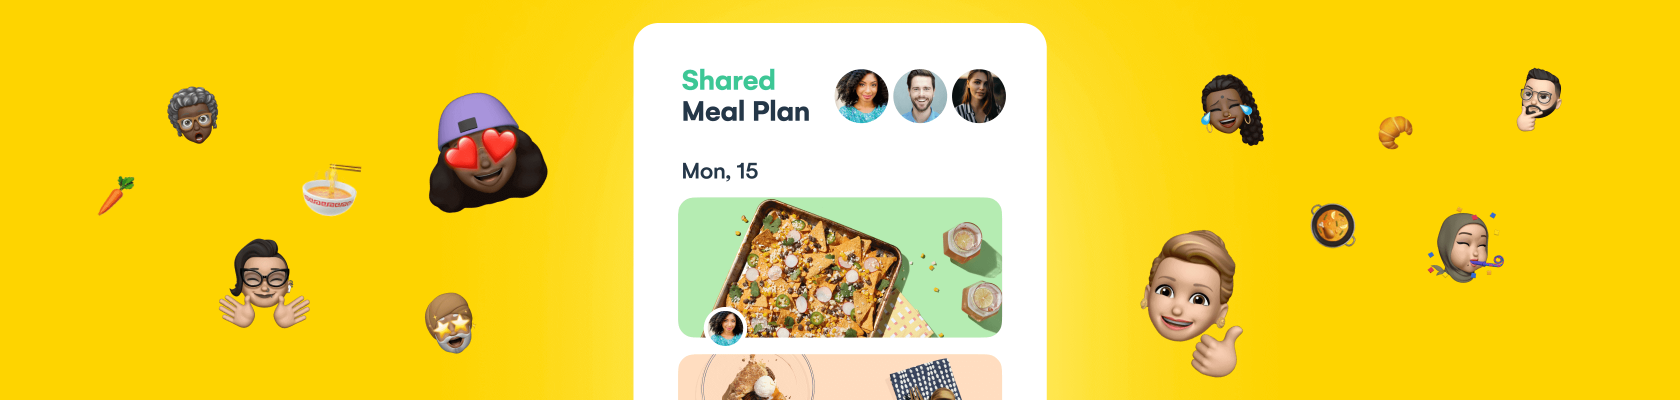 Introducing Shared Meal Plans & more